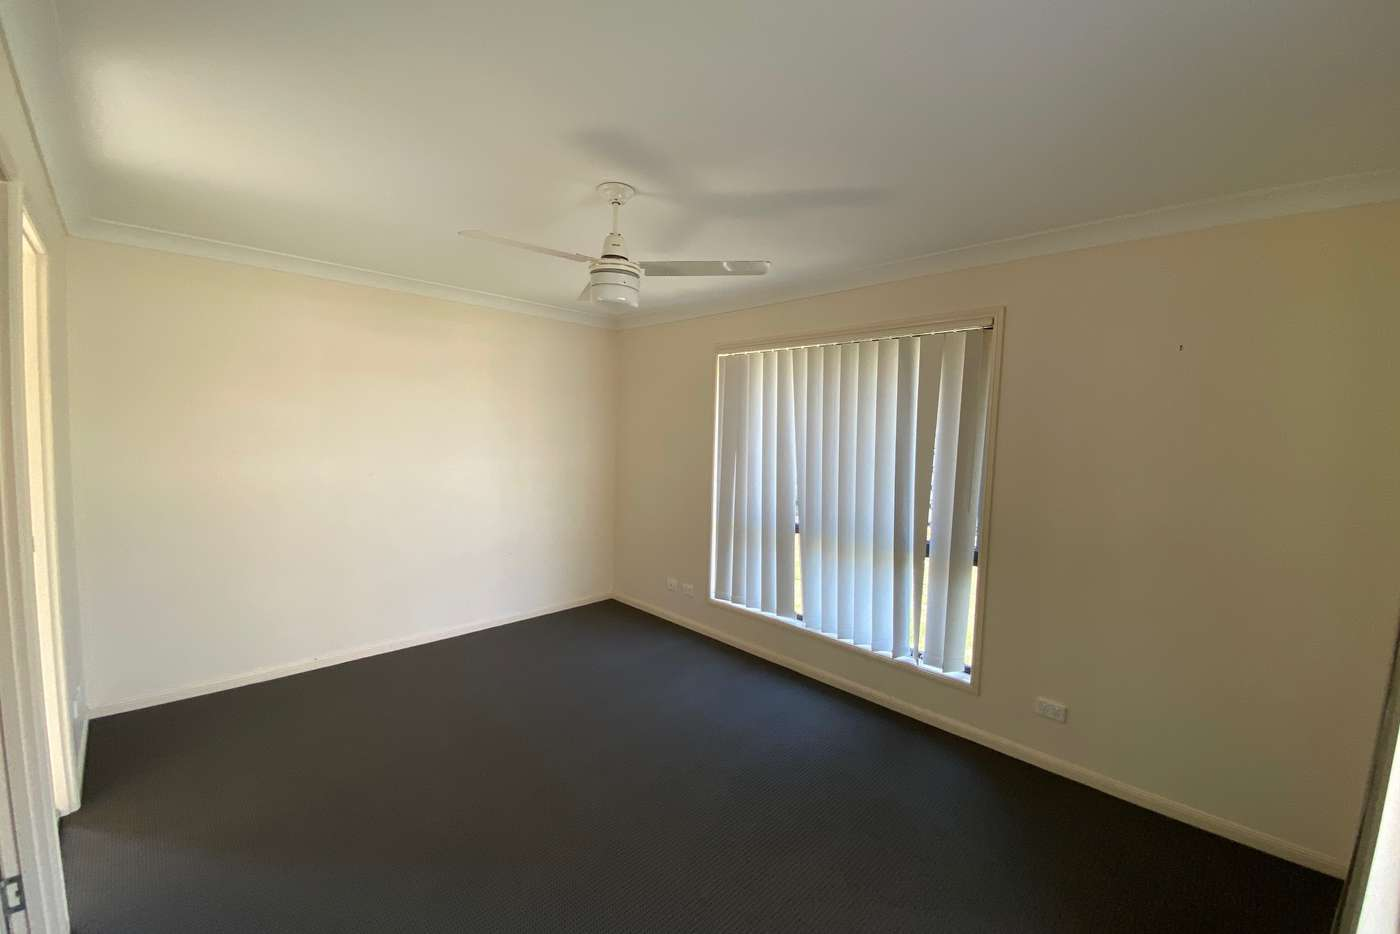 Sixth view of Homely house listing, 4 Tuohy Court, Rothwell QLD 4022